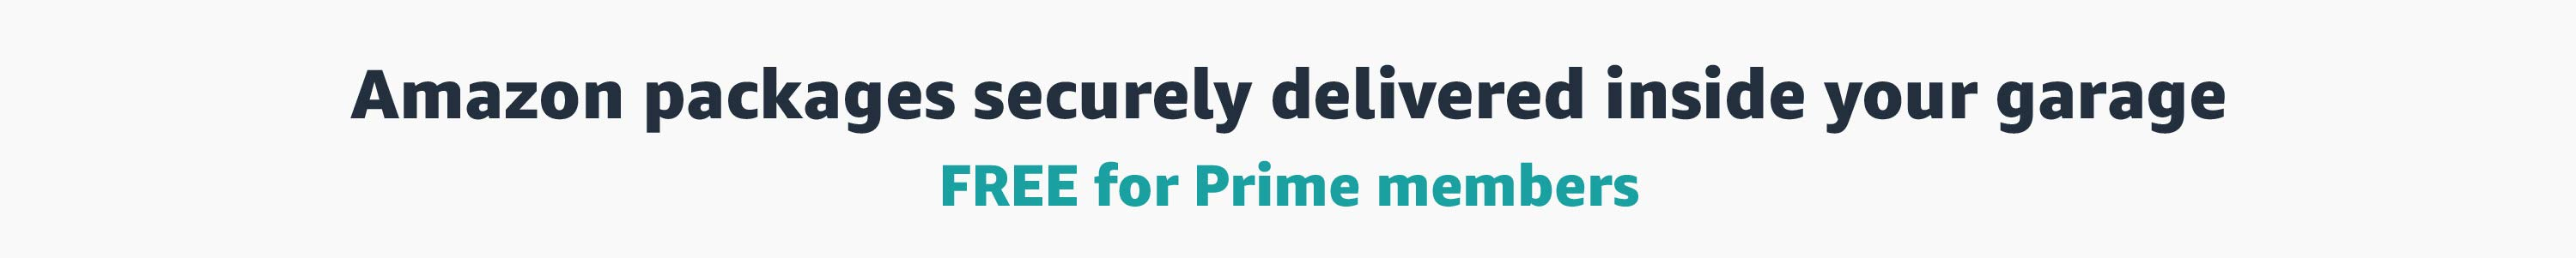 Amazon packages securely delivered inside your garage. FREE for Prime members.